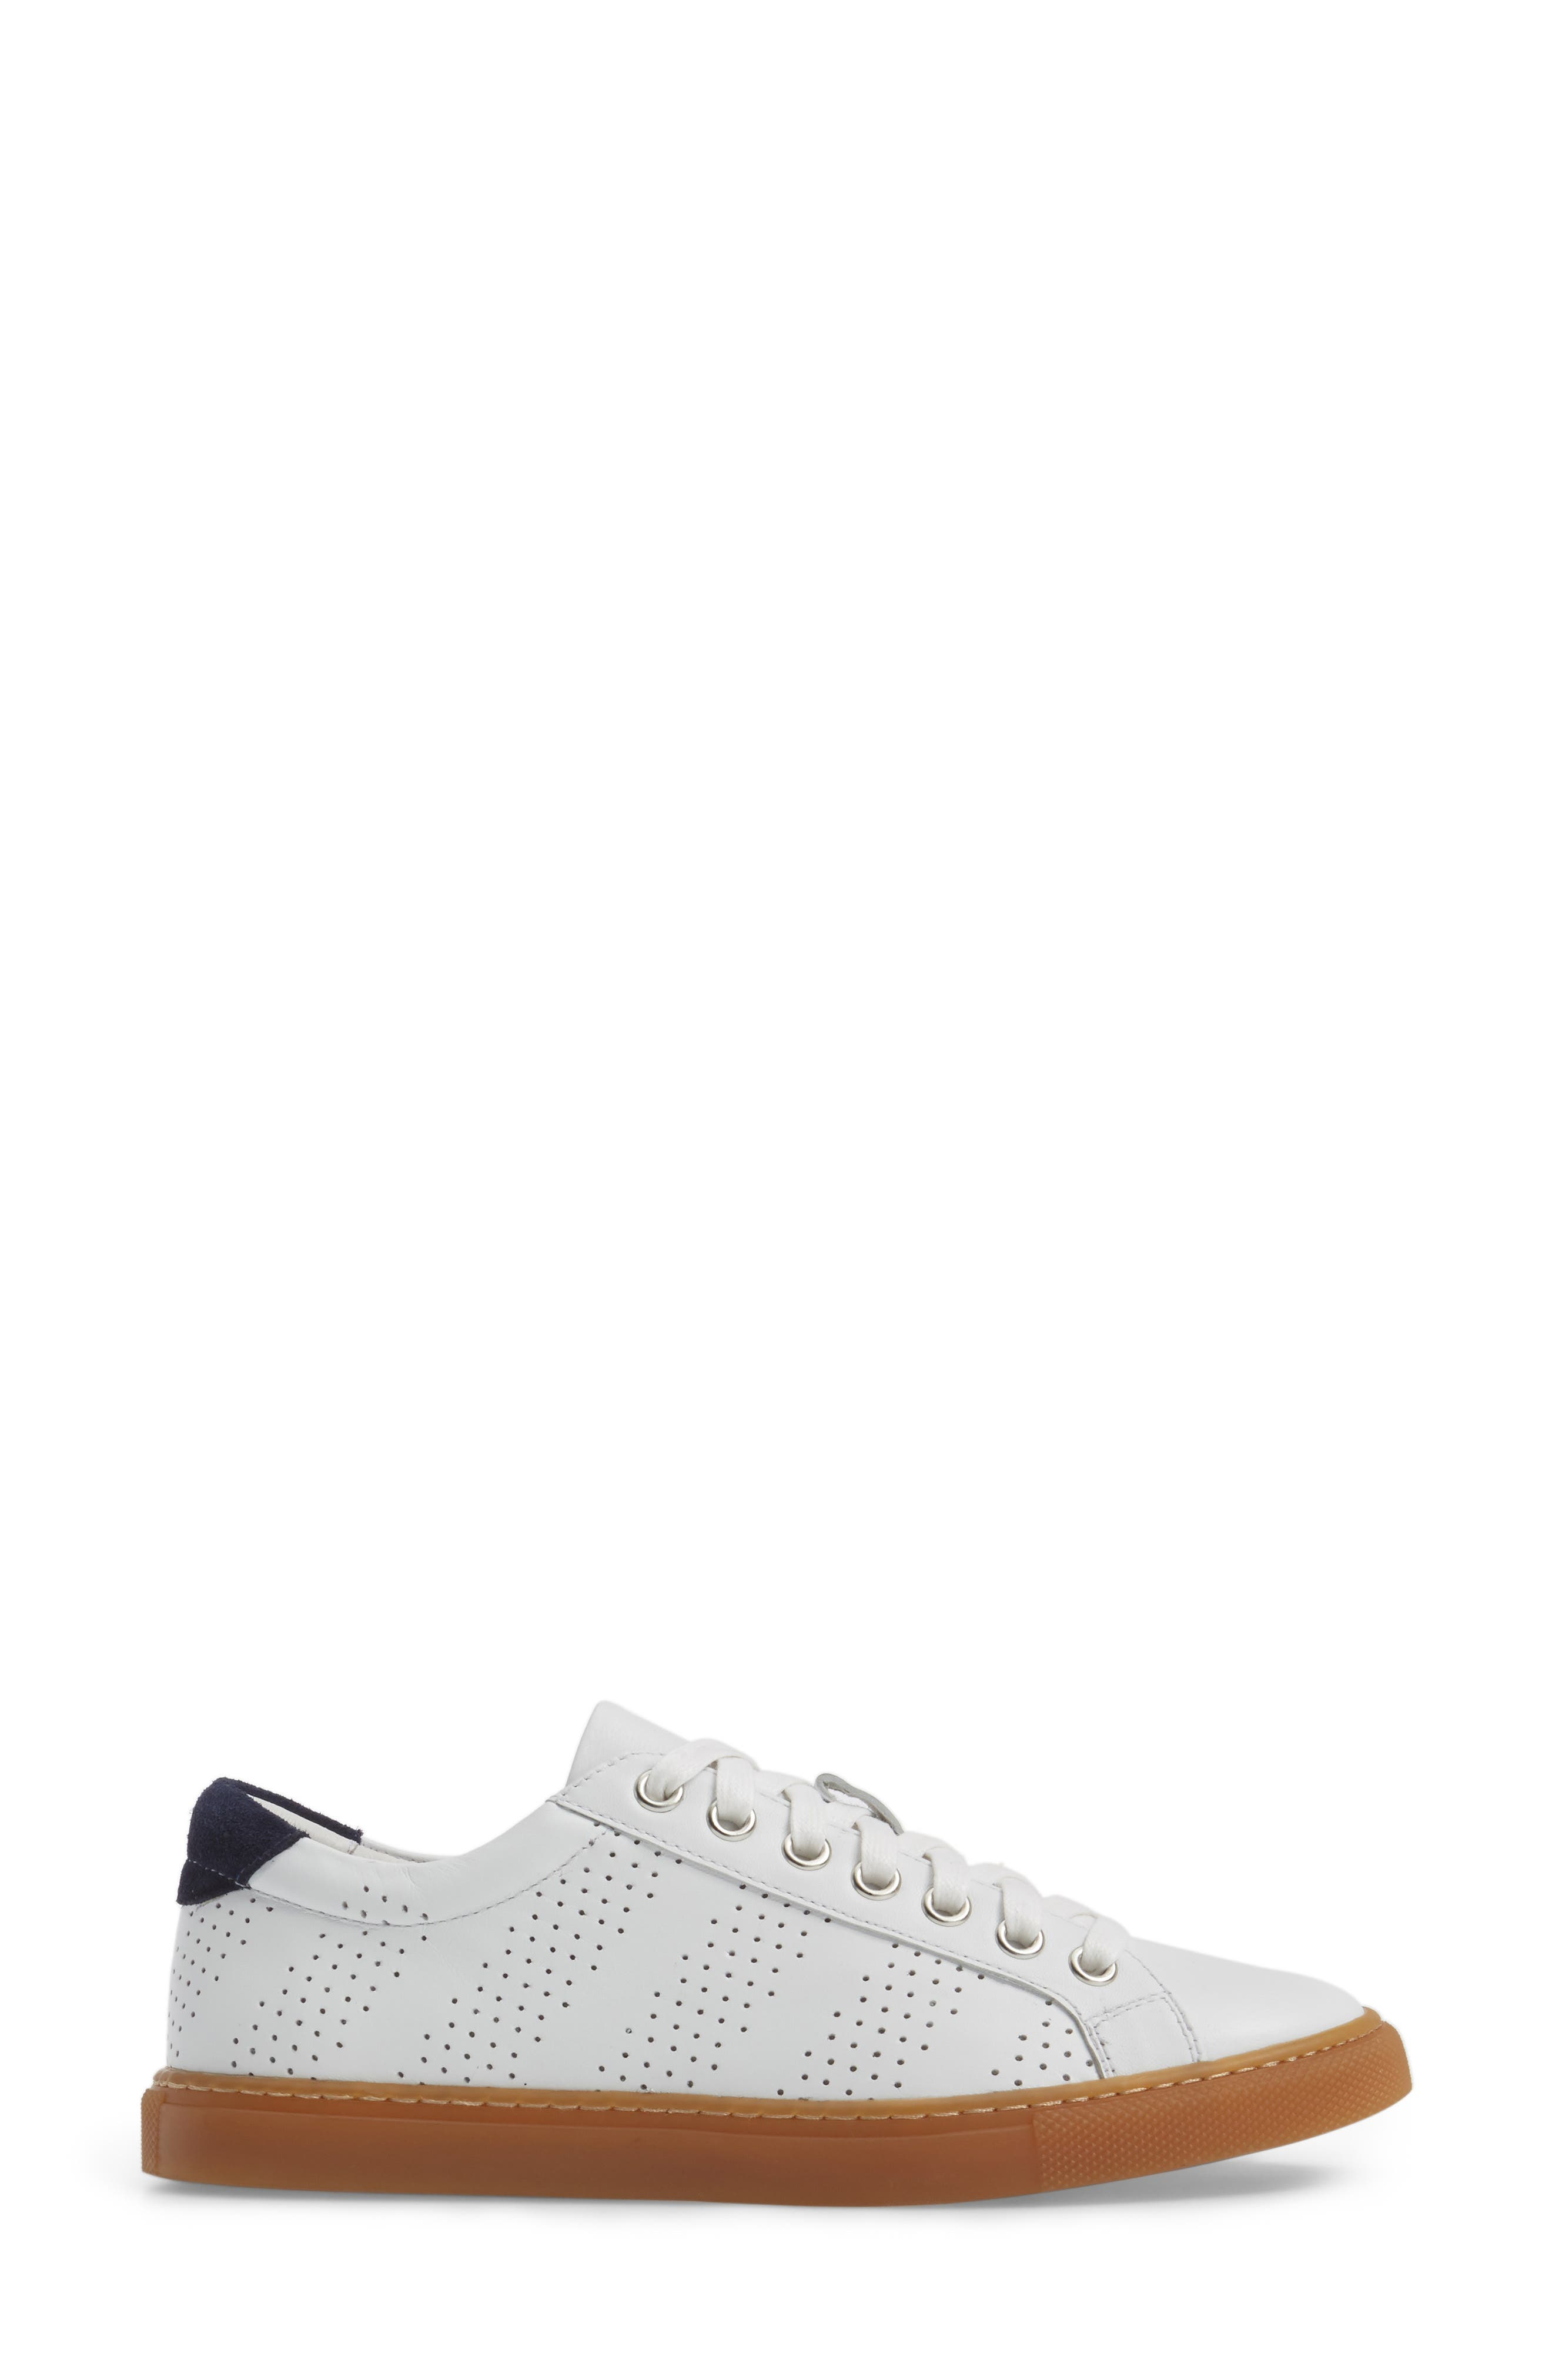 Alternate Image 3  - Treasure & Bond Merrick Perforated Sneaker (Women)